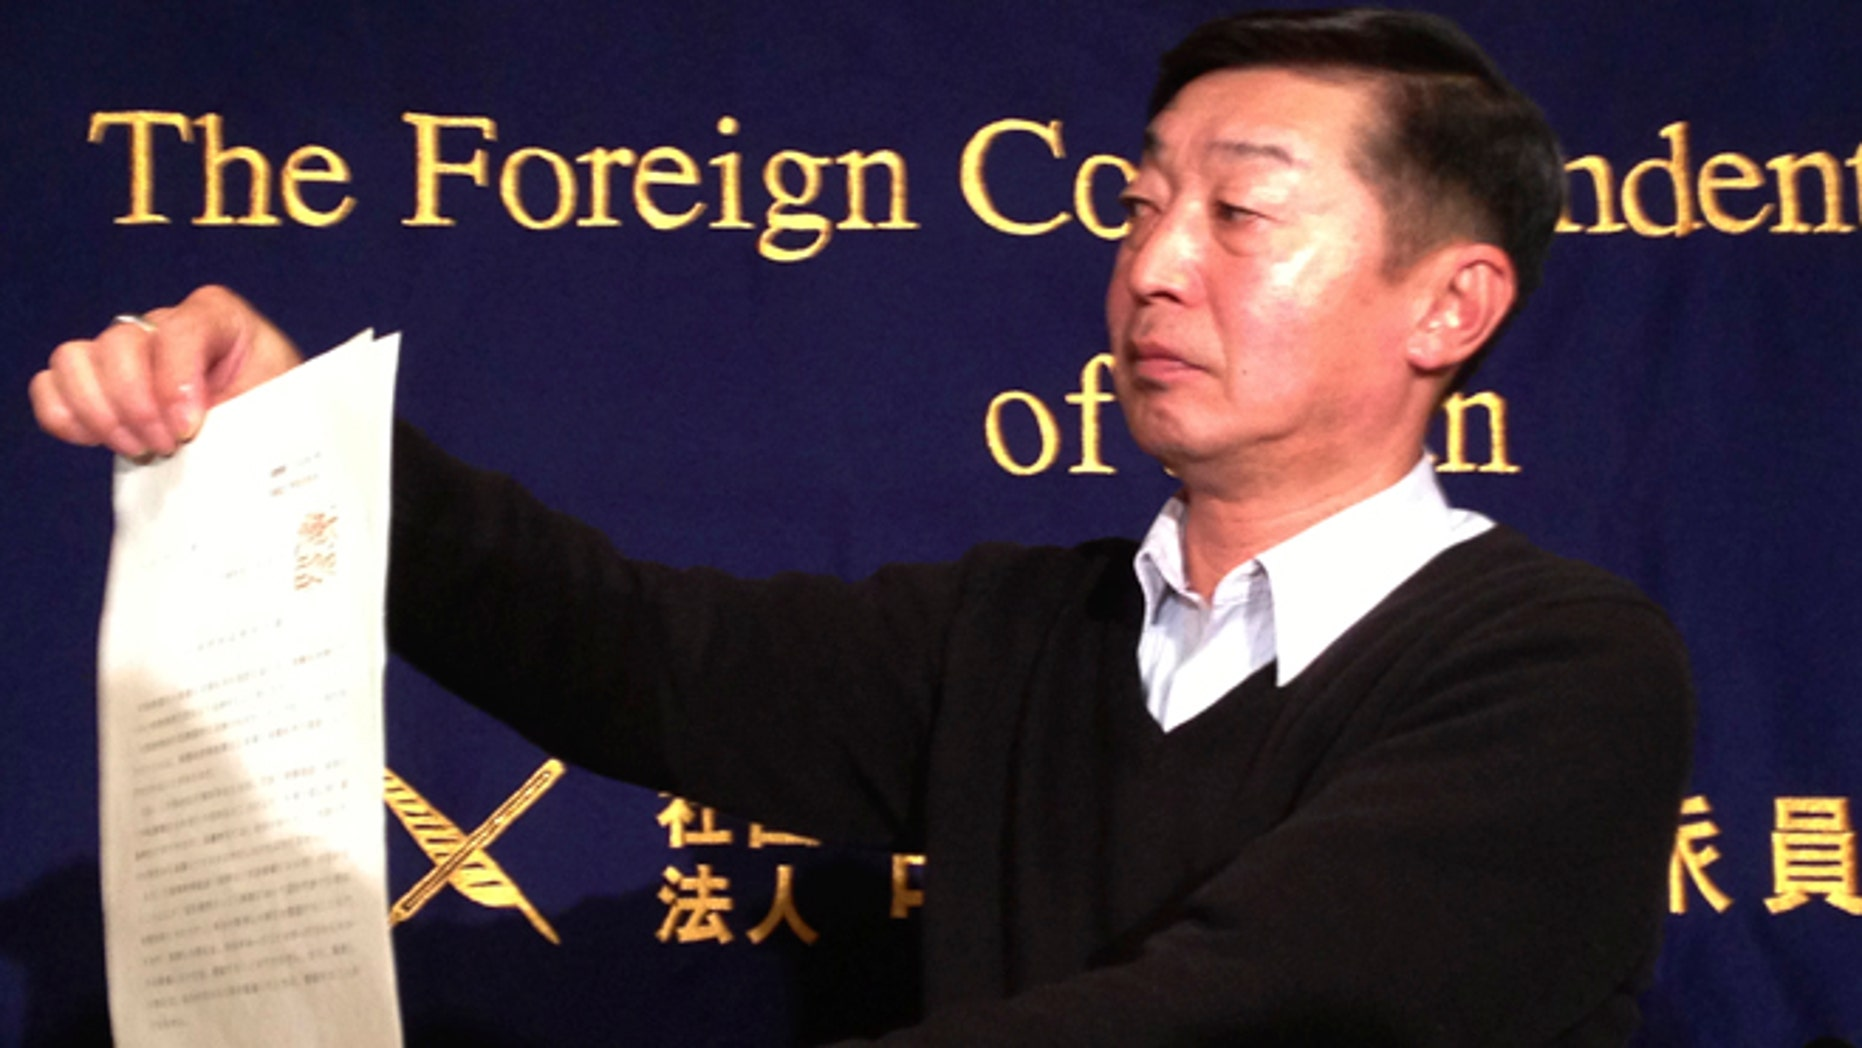 Feb. 12, 2015: Japanese freelance photographer Yuichi Sugimoto shows the press the original document of an order, signed by Foreign Minister Fumio Kishida, which he was given by Japanese foreign ministry officials at his home, during a news conference in Tokyo. Sugimoto said he was forced to give up his passport because he planned a reporting trip to Syria, which the government has stepped up warnings to its citizens not to visit after two Japanese were killed there in a recent hostage crisis.